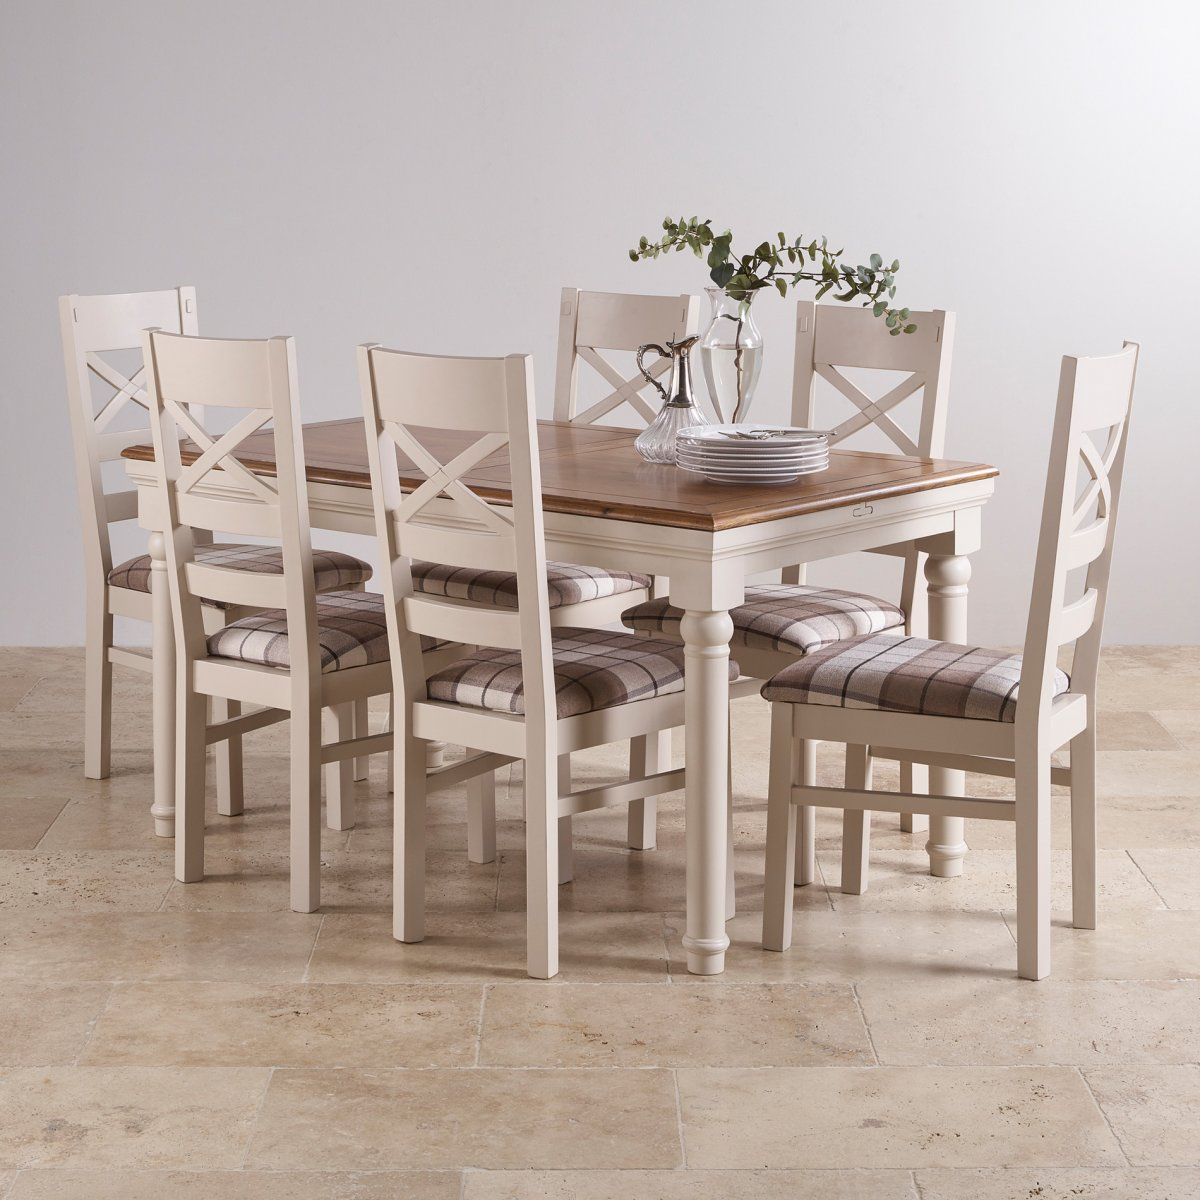 Shay dining table set in painted oak 6 brown check chairs for 5ft dining room table